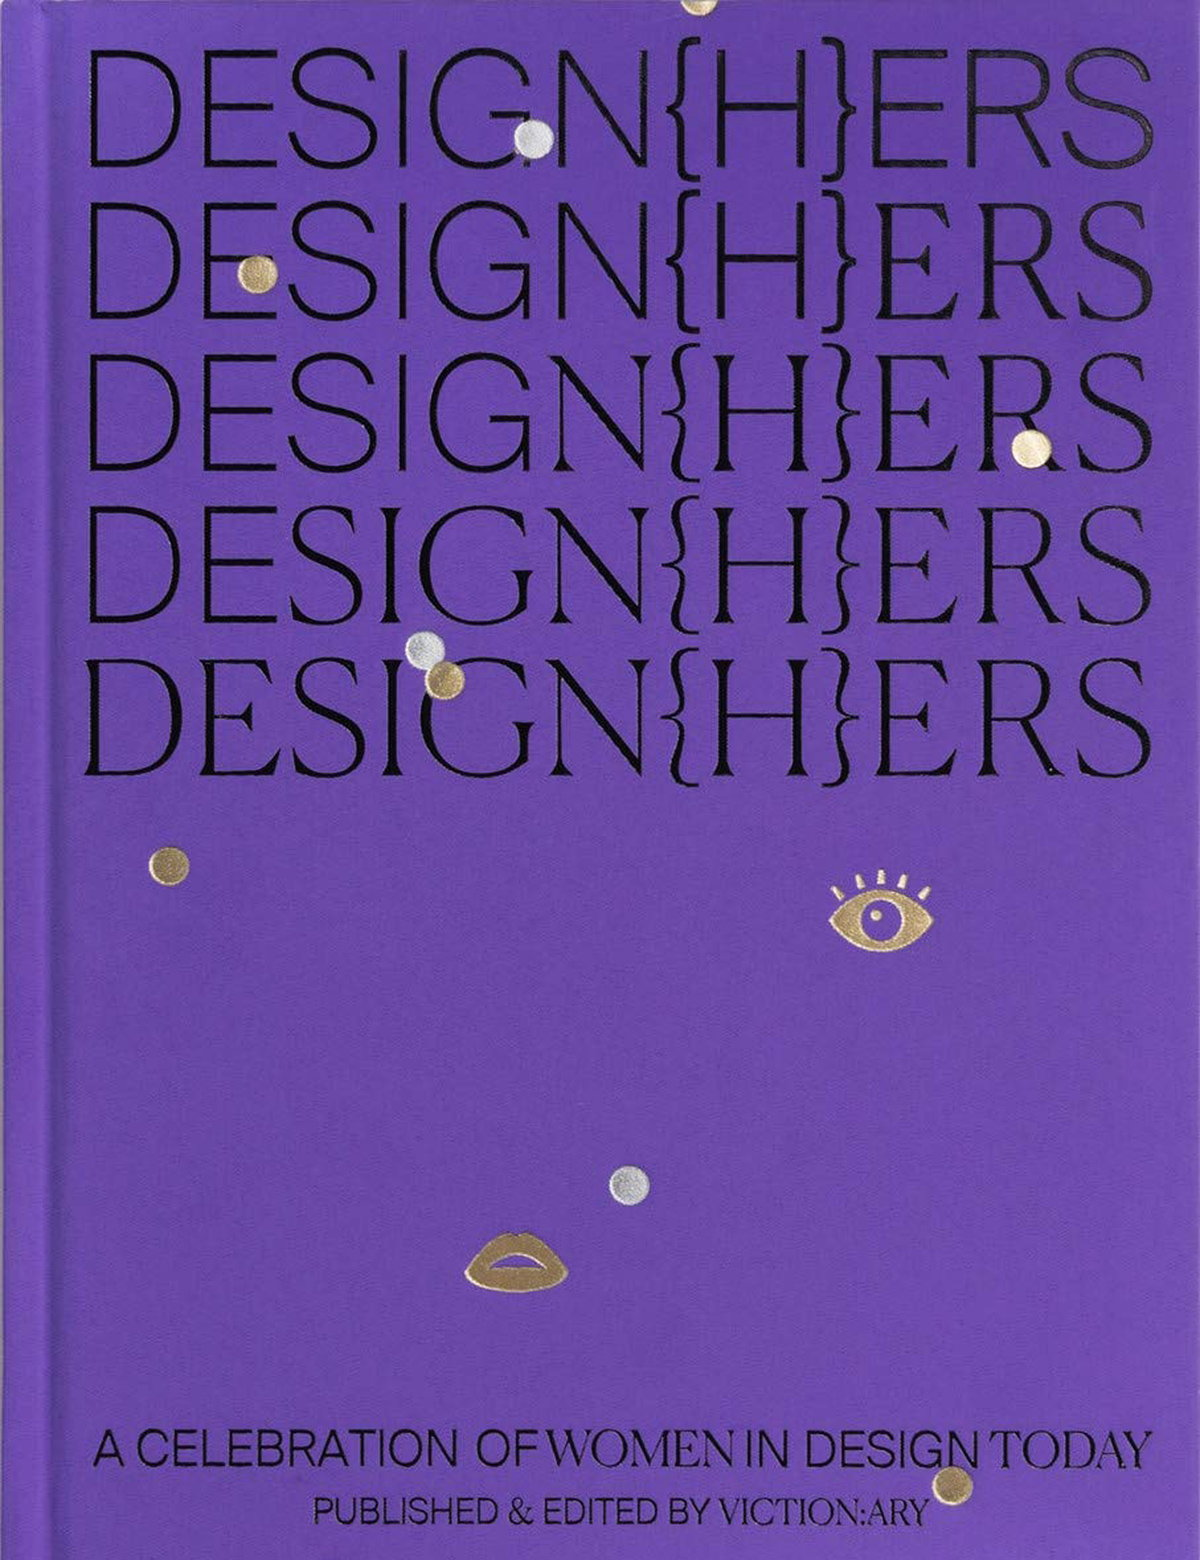 DESIGN{H}ERS - A Celebration of Women in Design Today